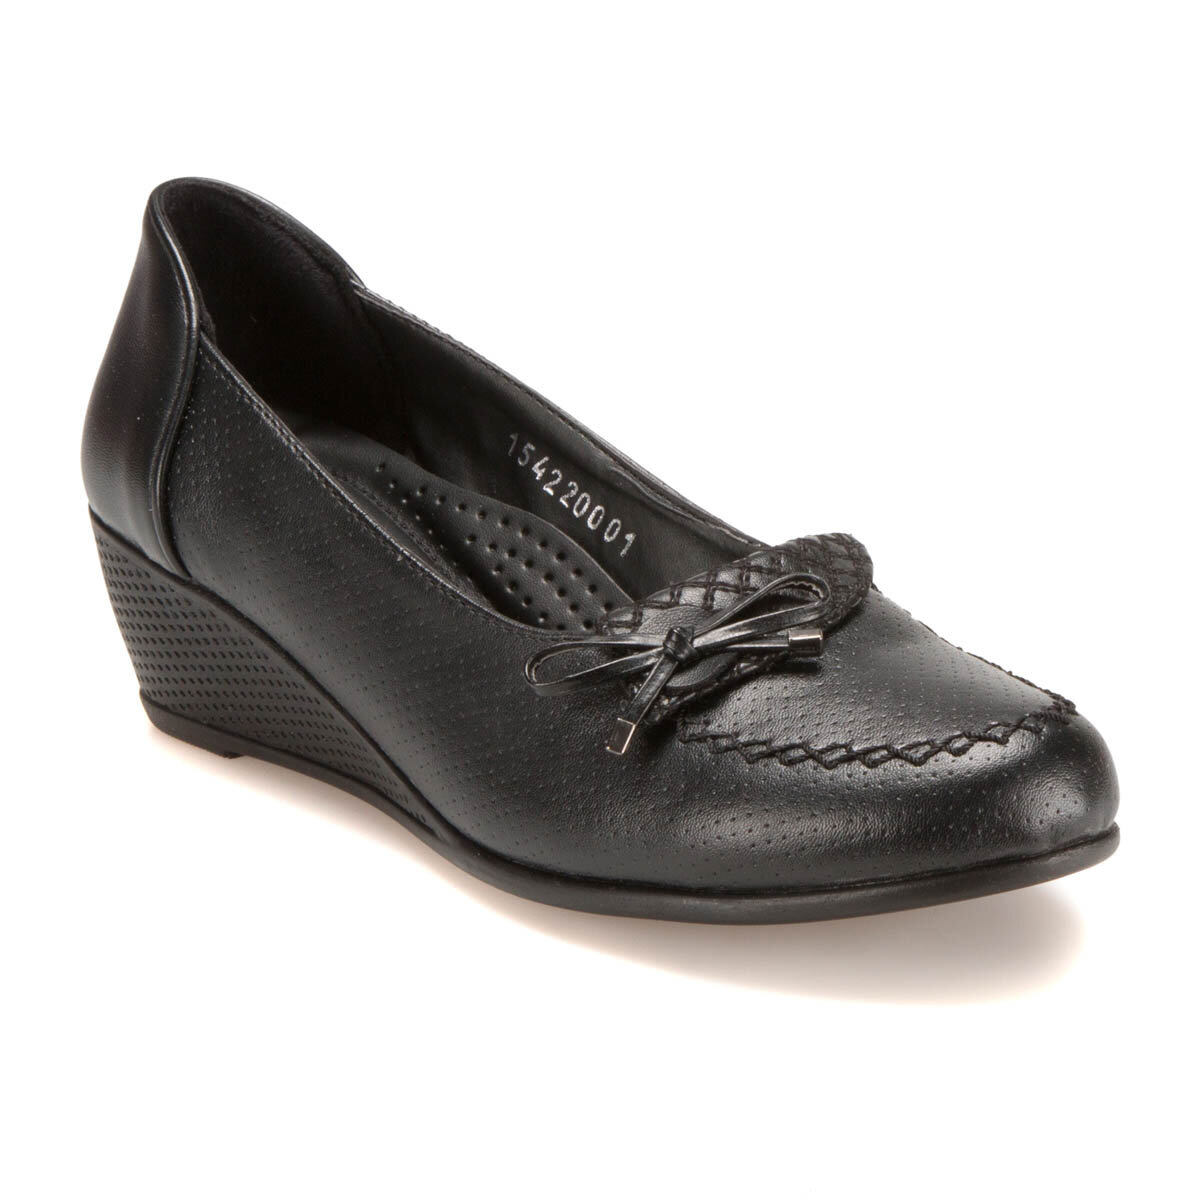 FLO 61.154220FZ Black Women Shoes Polaris